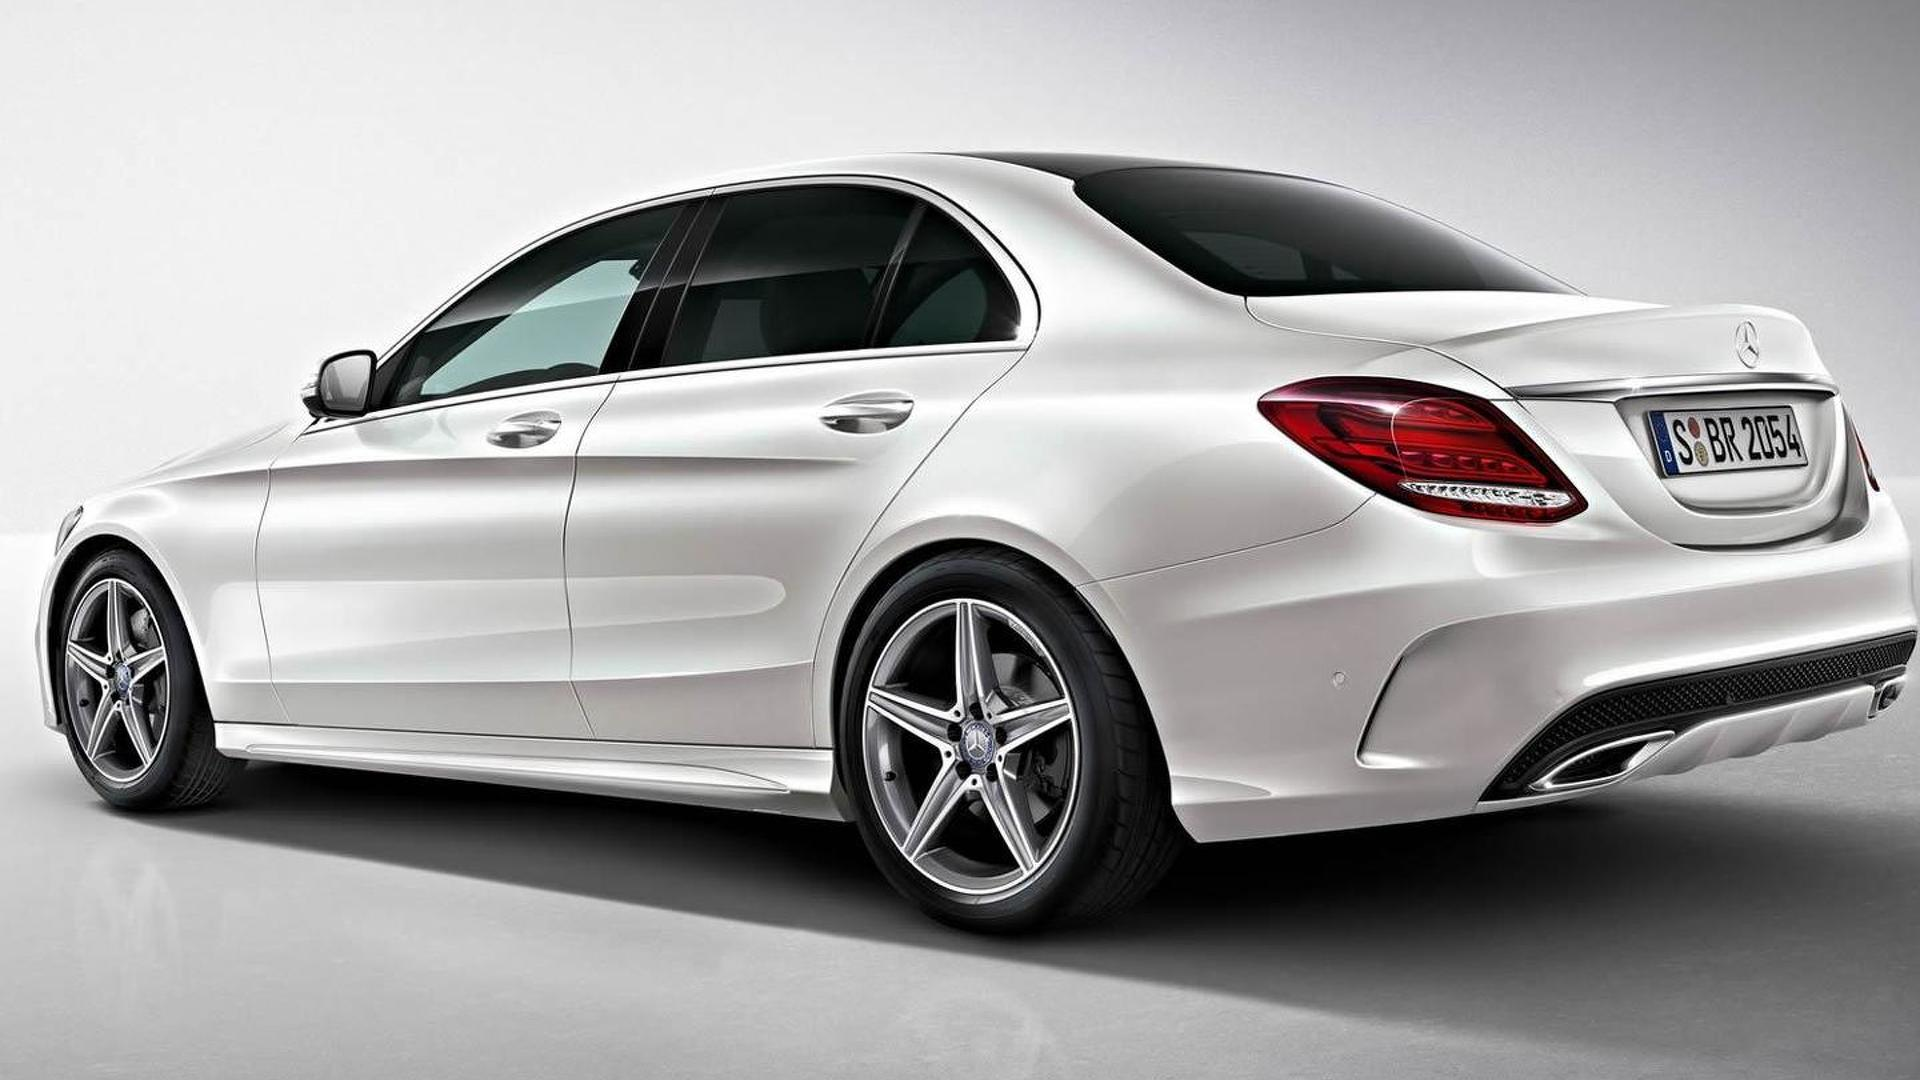 2014 Mercedes Benz C Class Amg Line Photos And Details Released